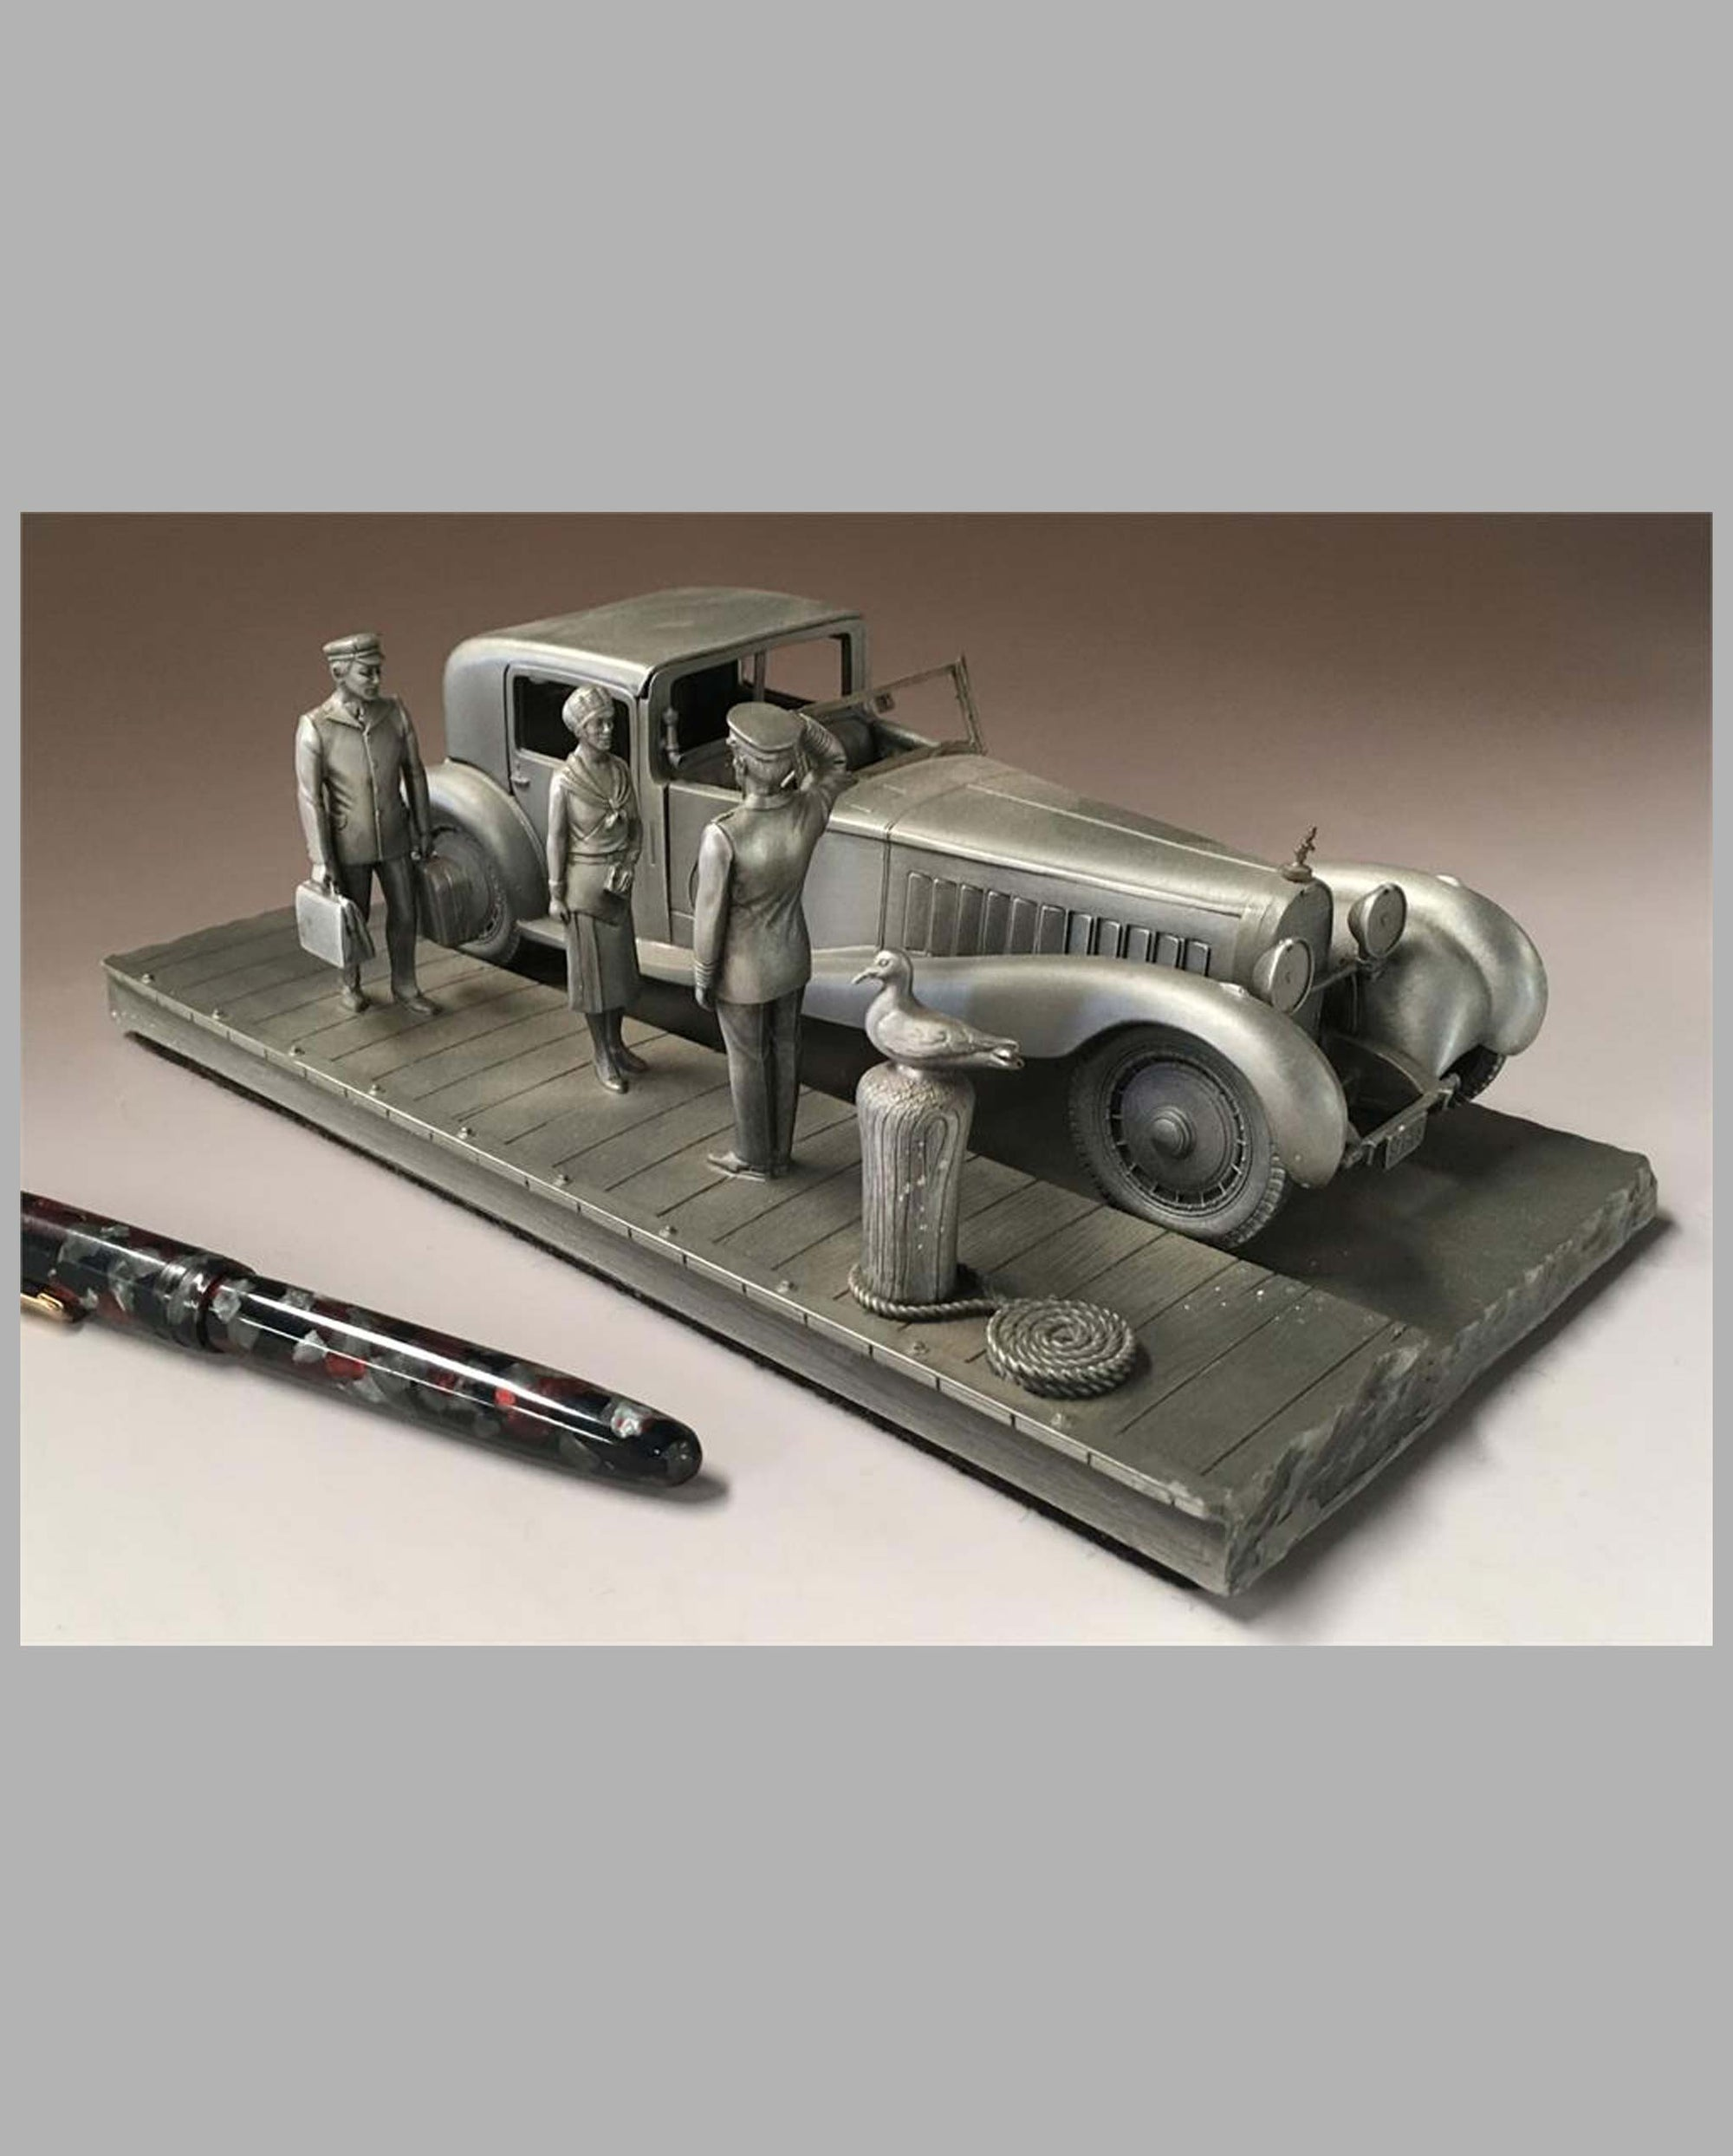 The Bugatti Royale Pewter Sculpture by Raymond Meyers